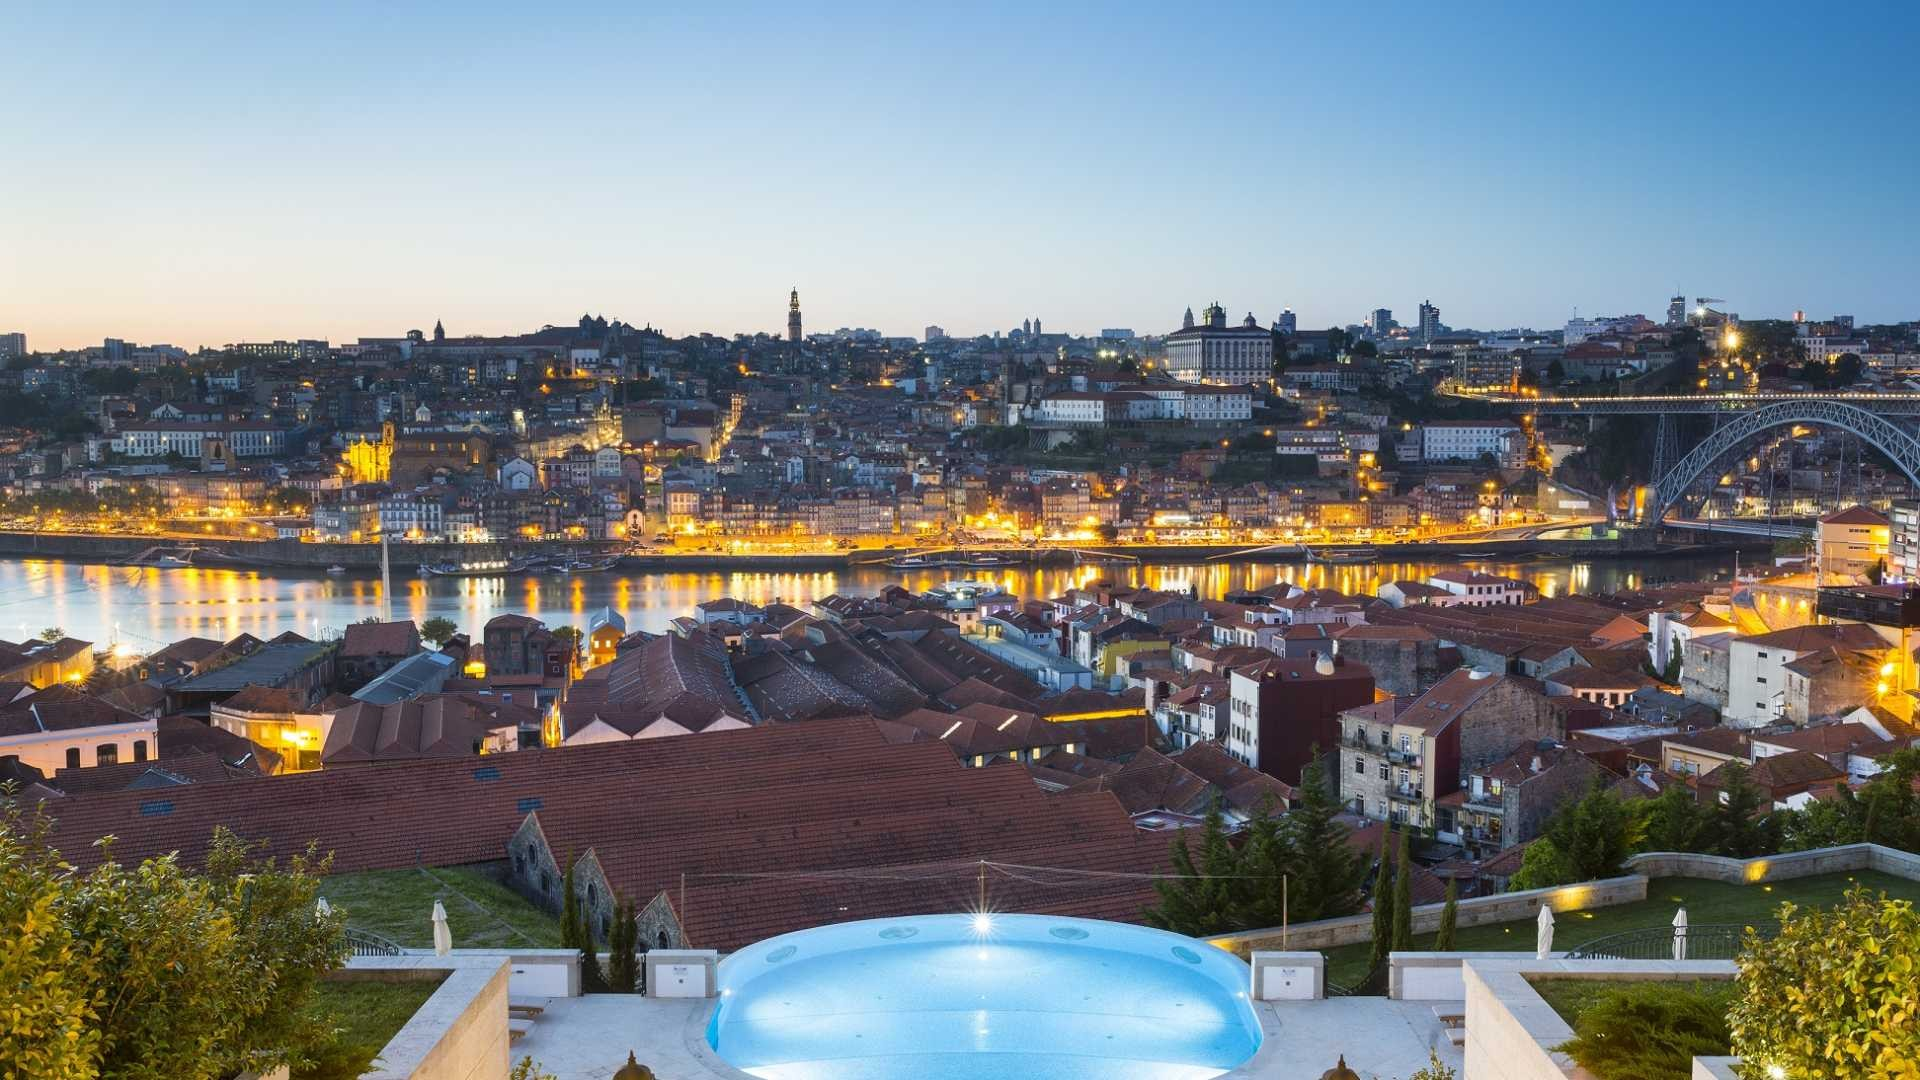 Best Hotels in Portugal: The Yeatman best hotels in portugal Best Hotels in Portugal You Can't Miss Best Hotels in Portugal 16